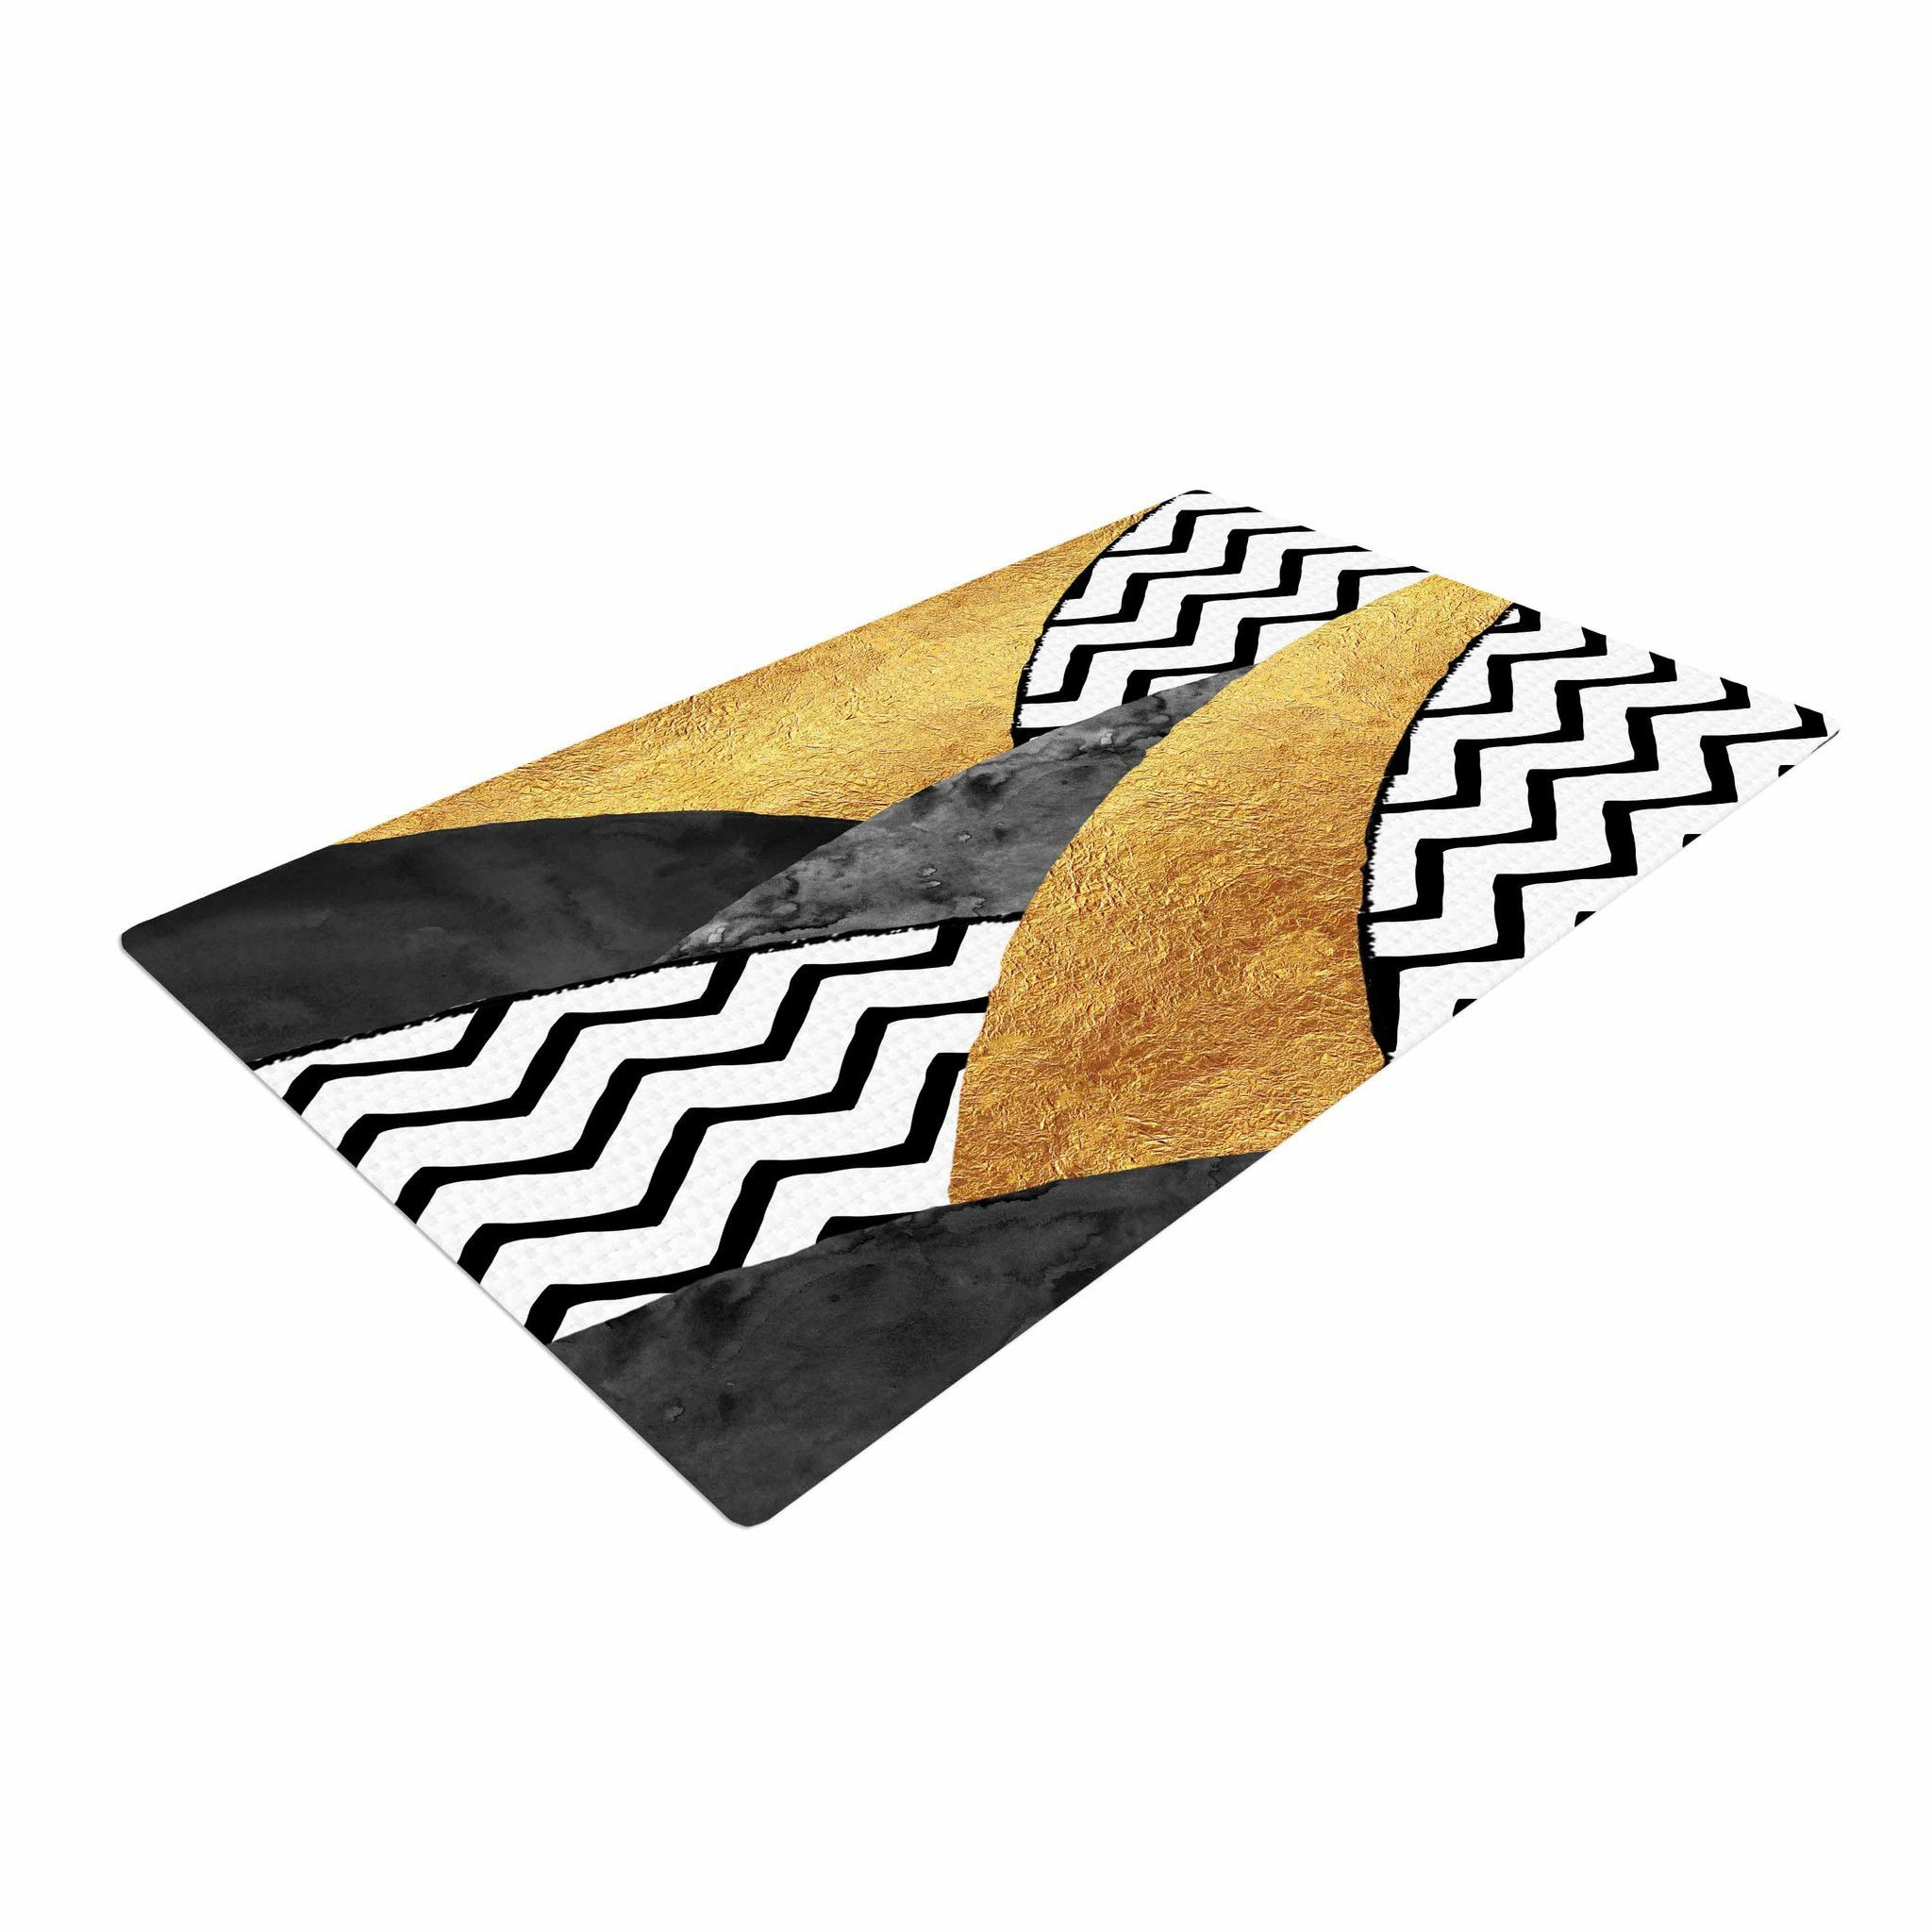 Zara Martina Mansen Chevron Hills Gold Black White Woven Area